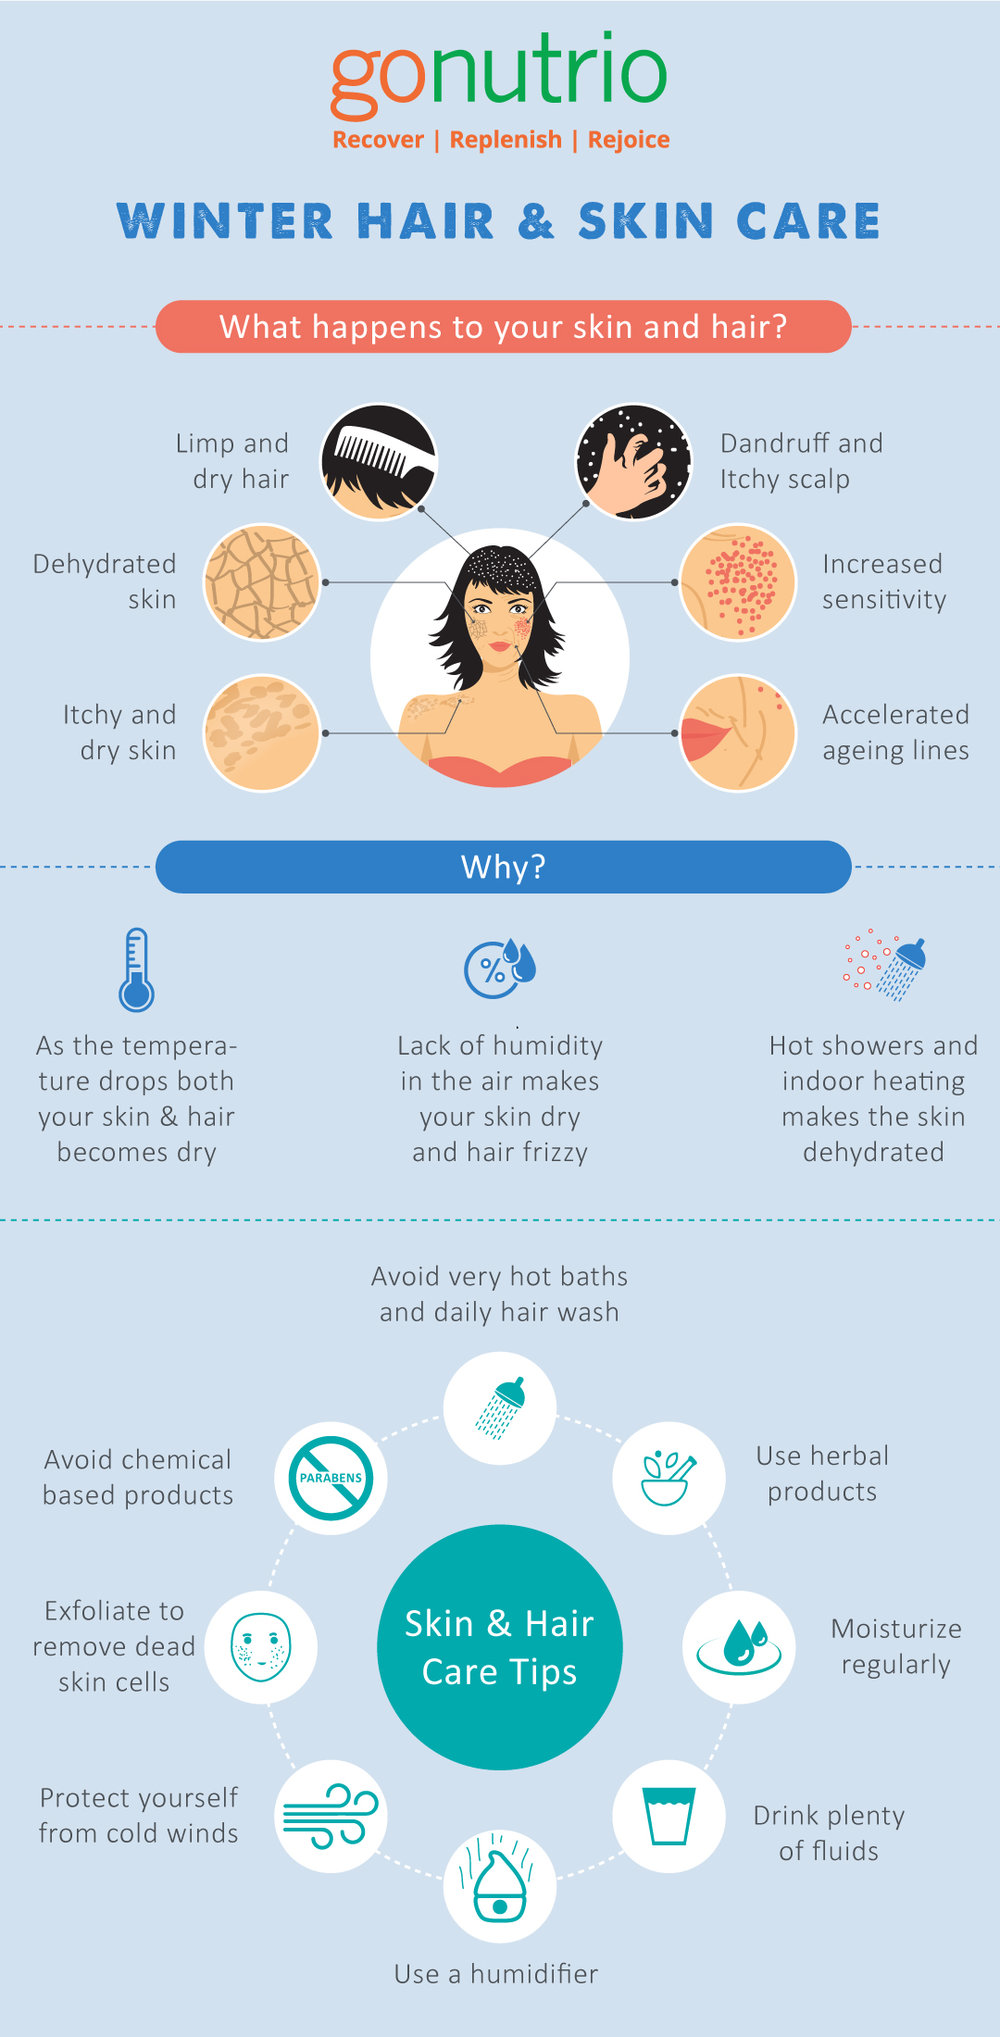 Winter-Skin-Care-infographic_2.jpg